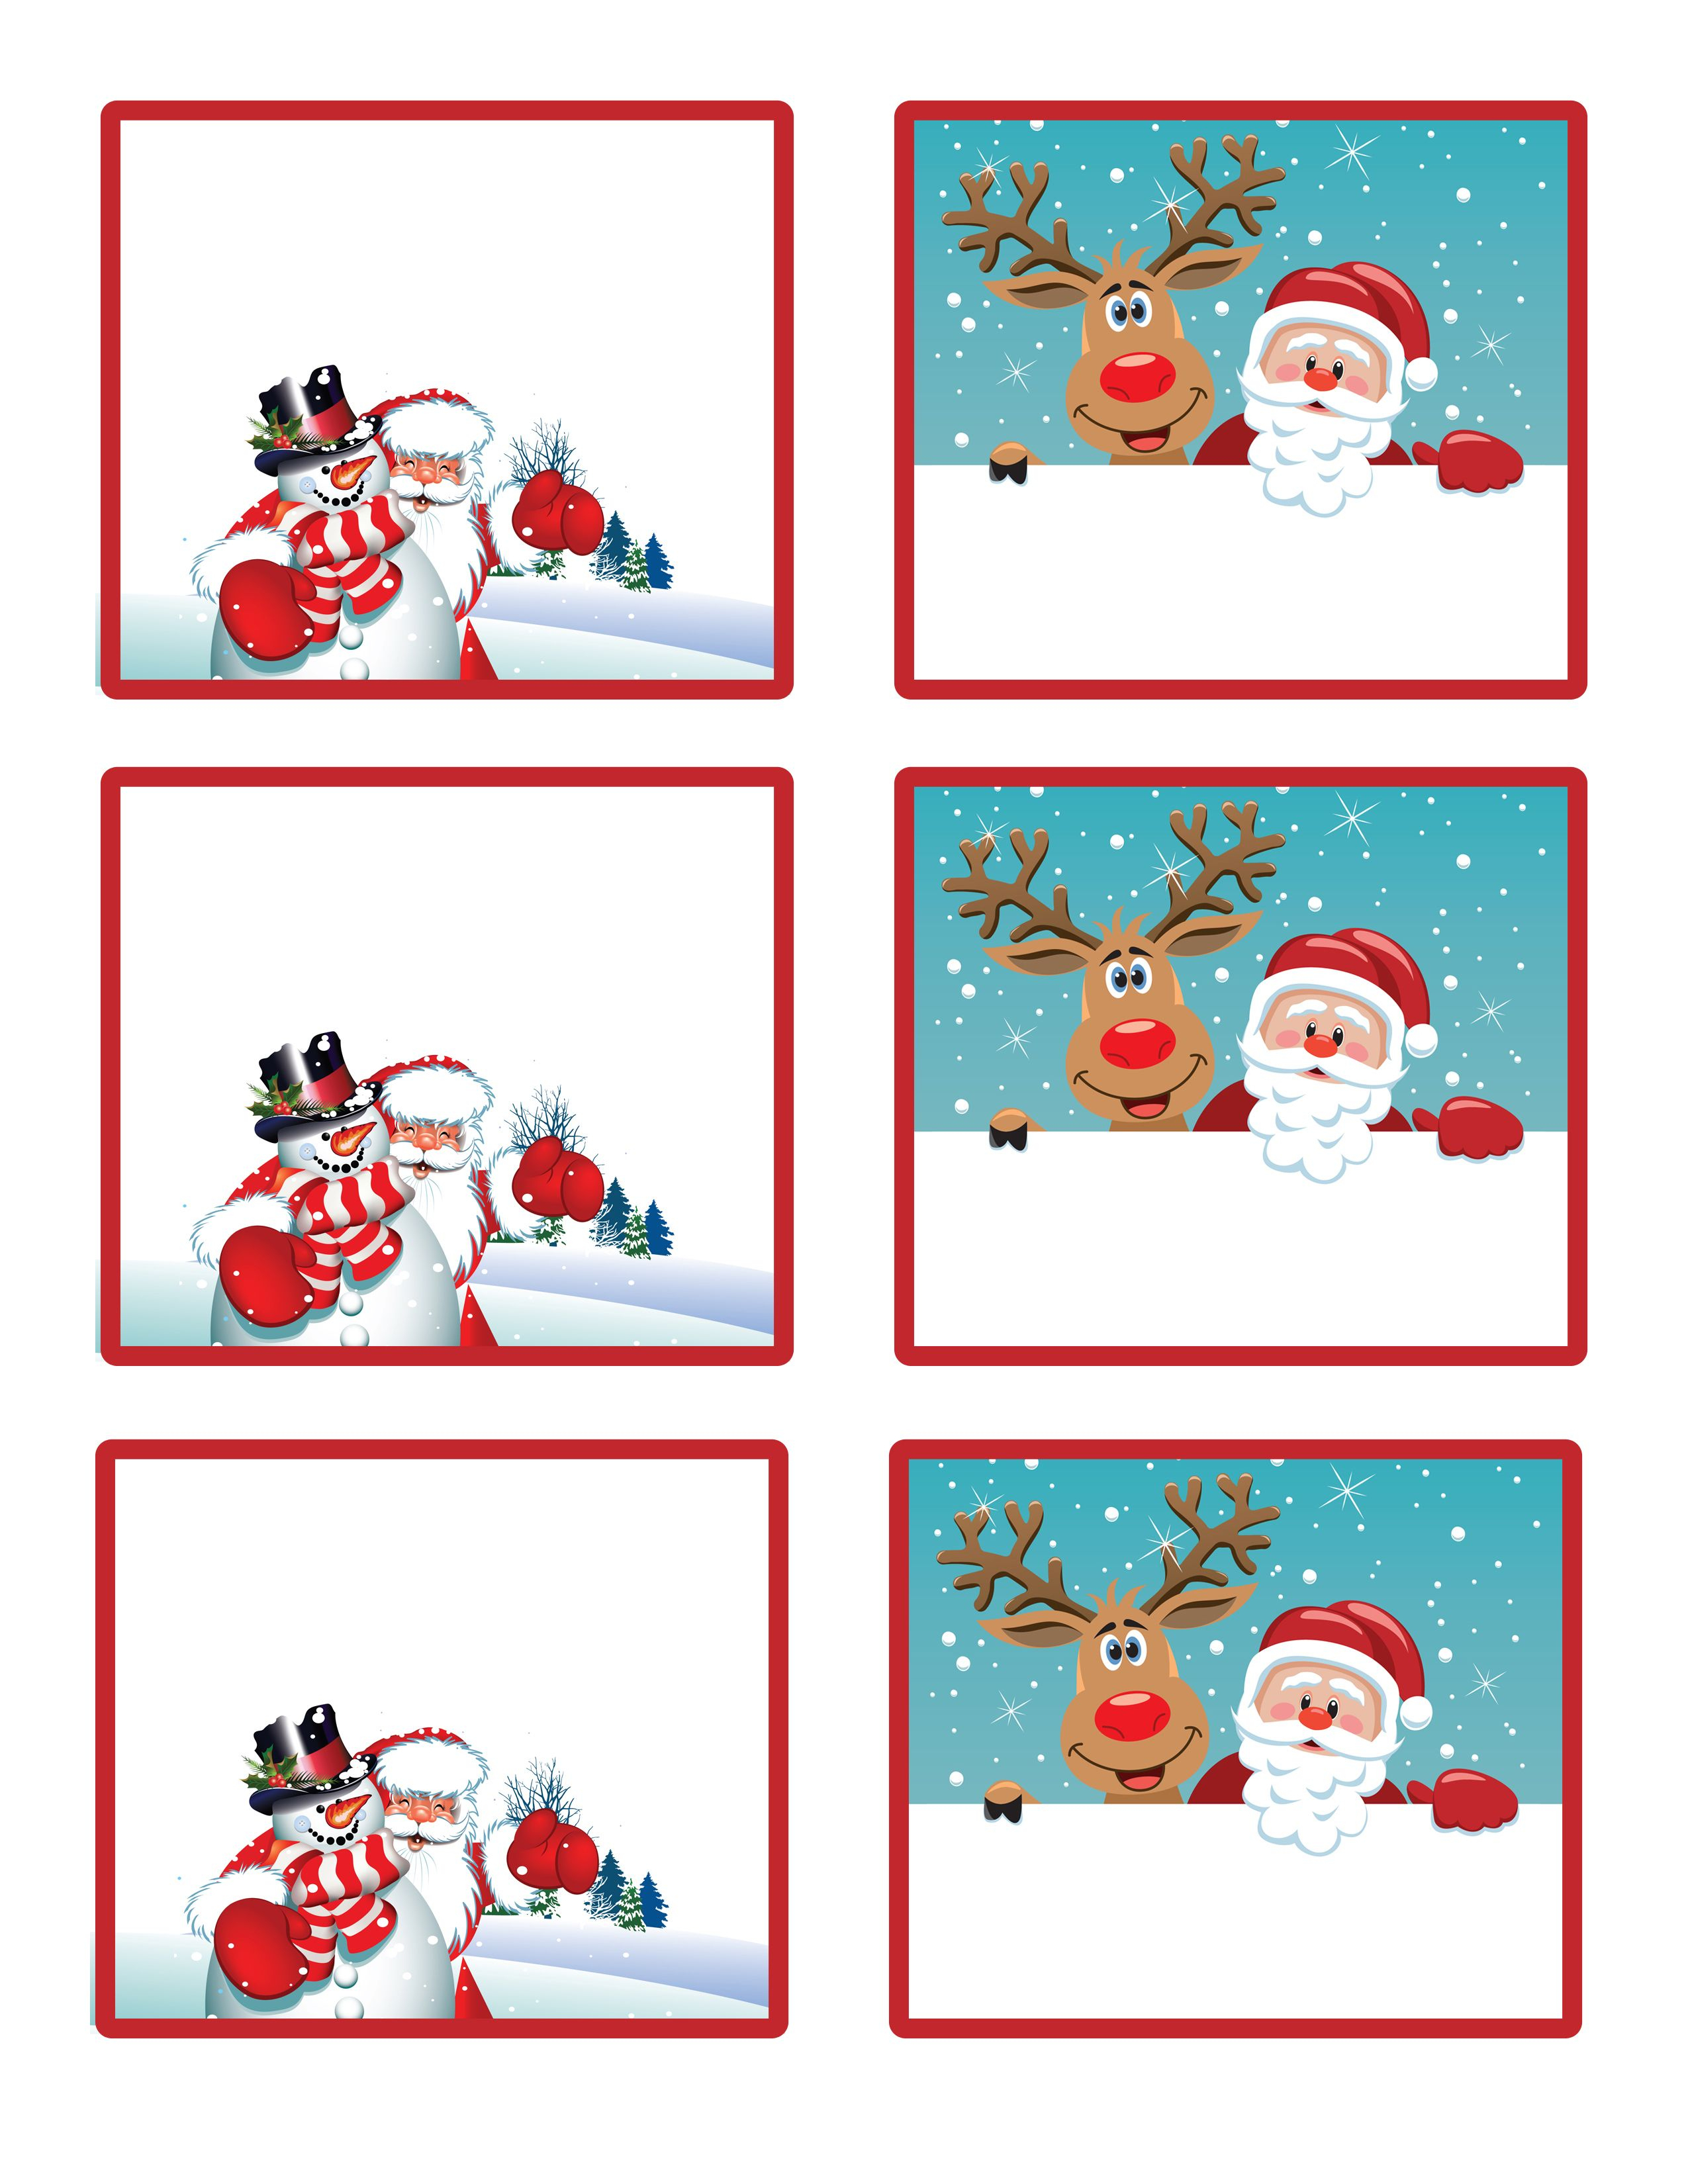 Easy Free Letter From Santa Magical Package | Christmas | Christmas - Free Printable Gift Name Tags